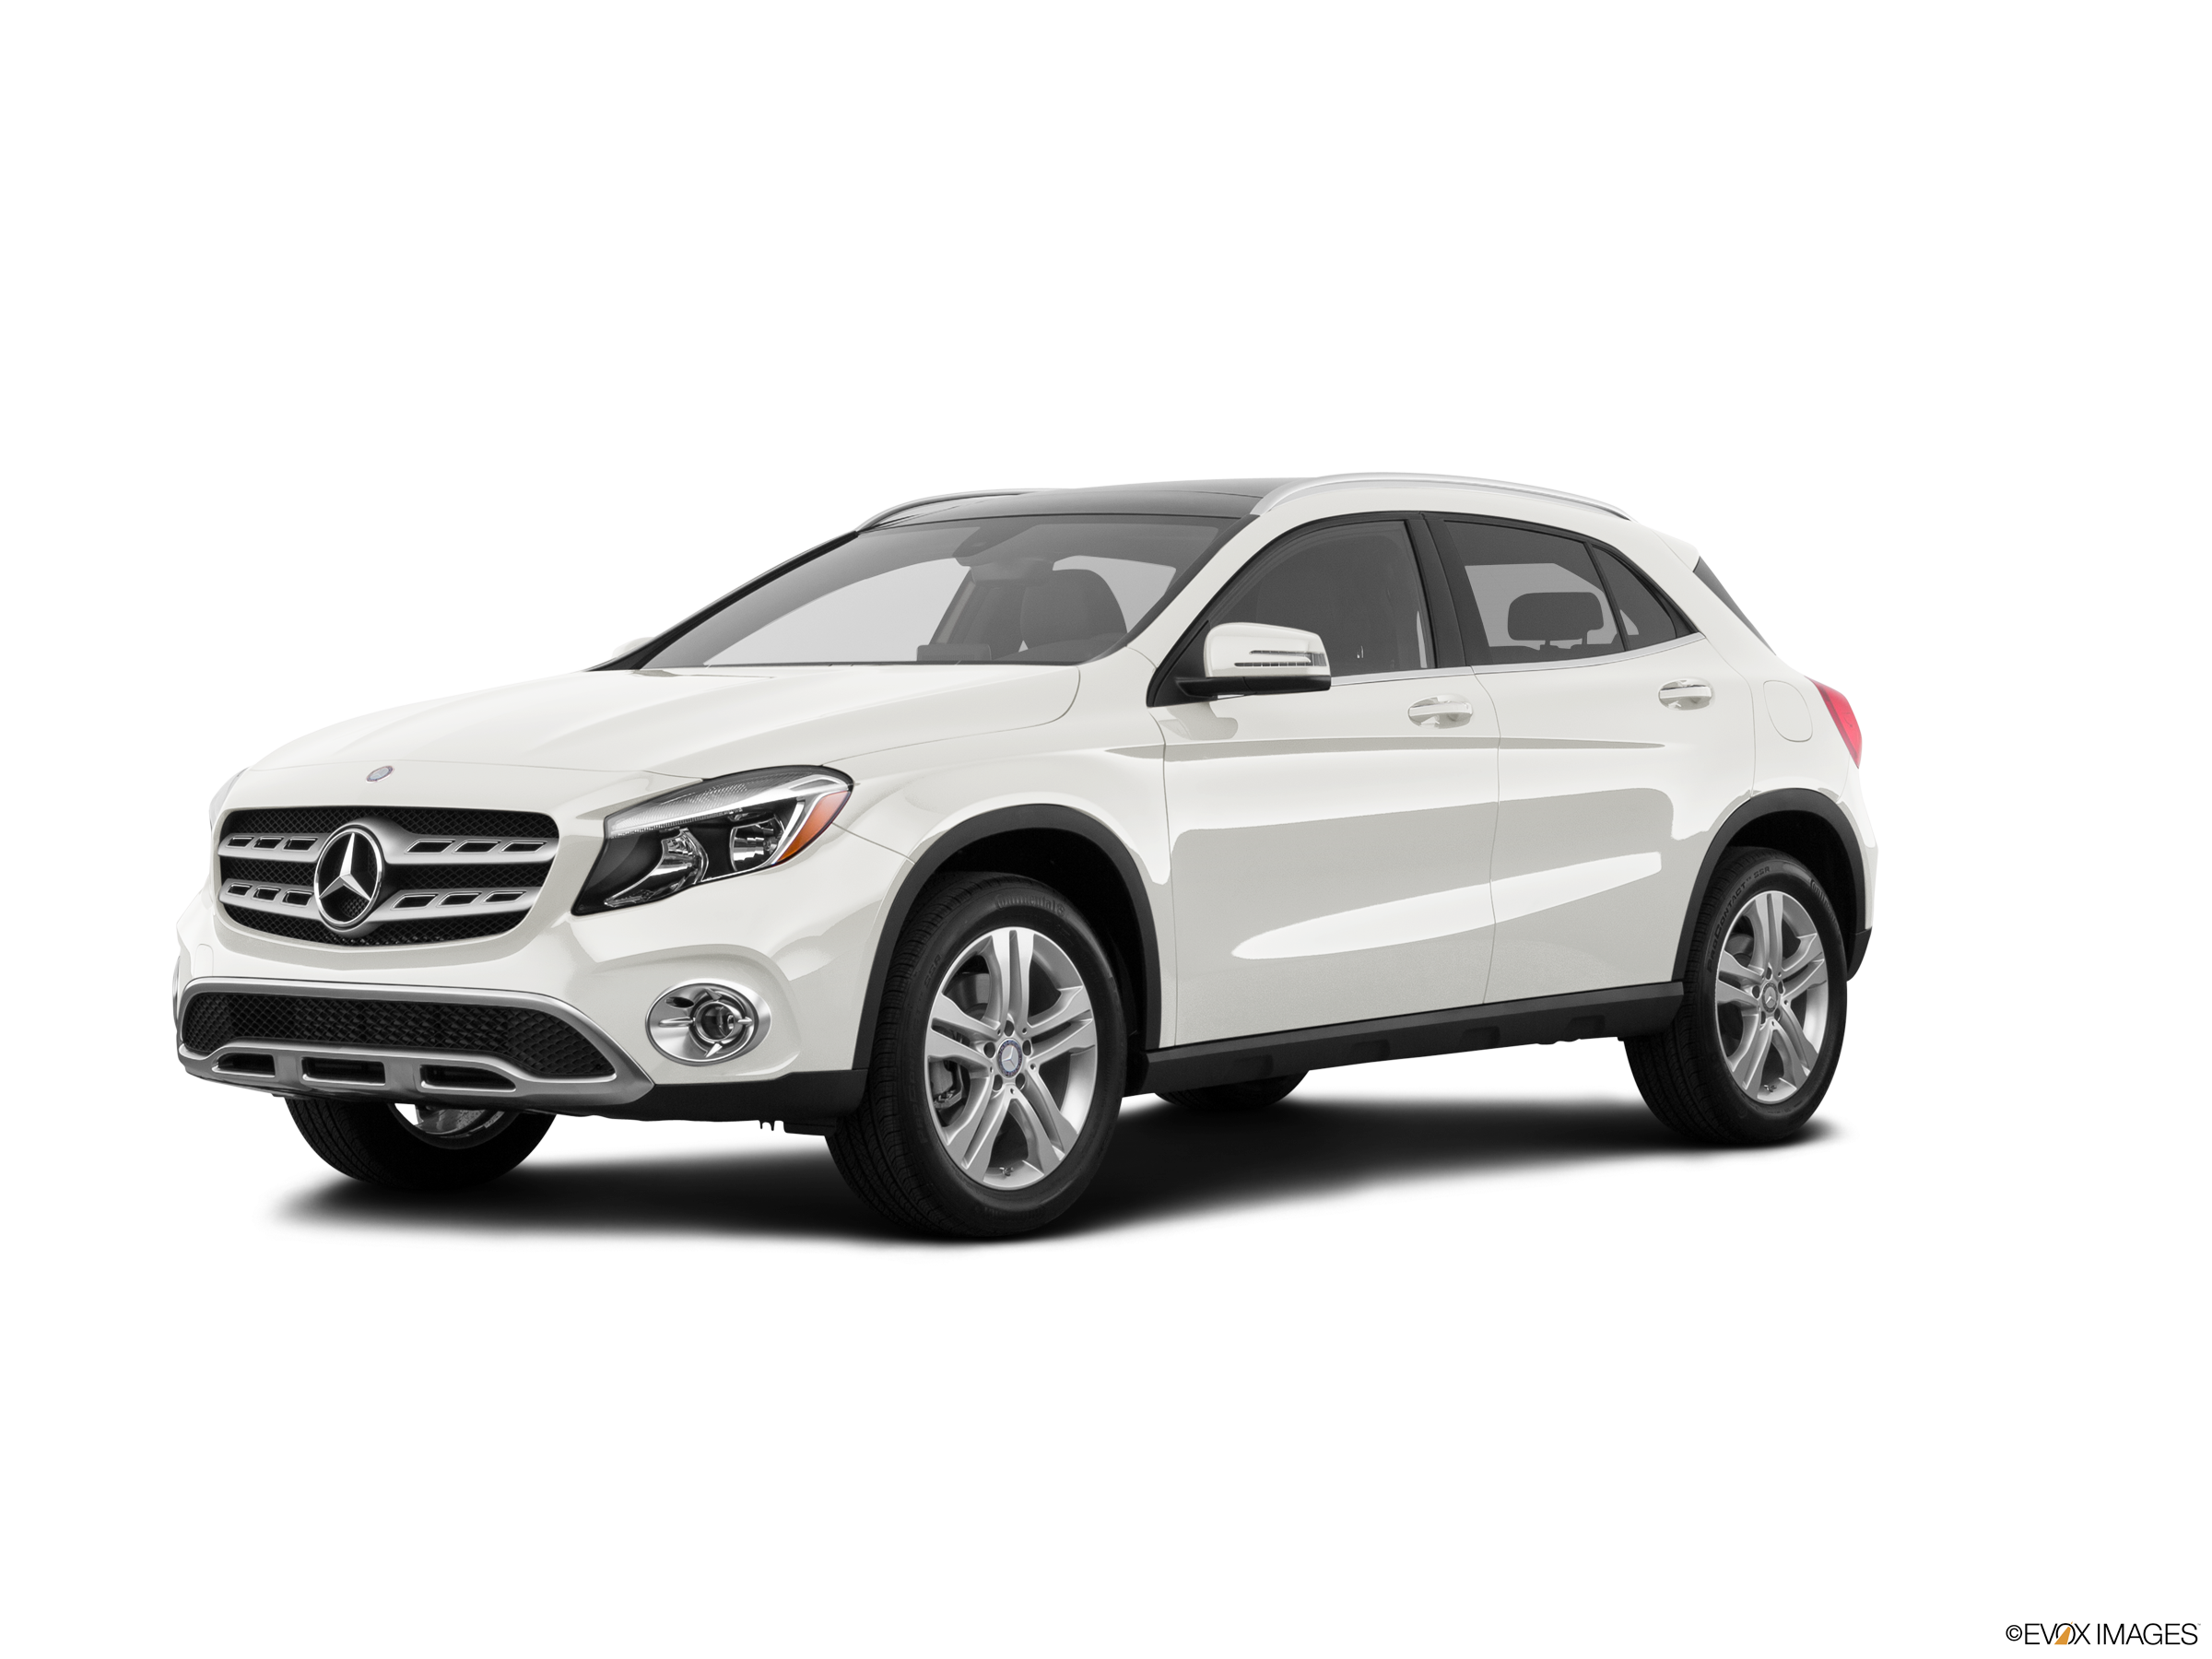 10 Best Luxury Cars Under $35,000 - 2018 Mercedes-Benz GLA